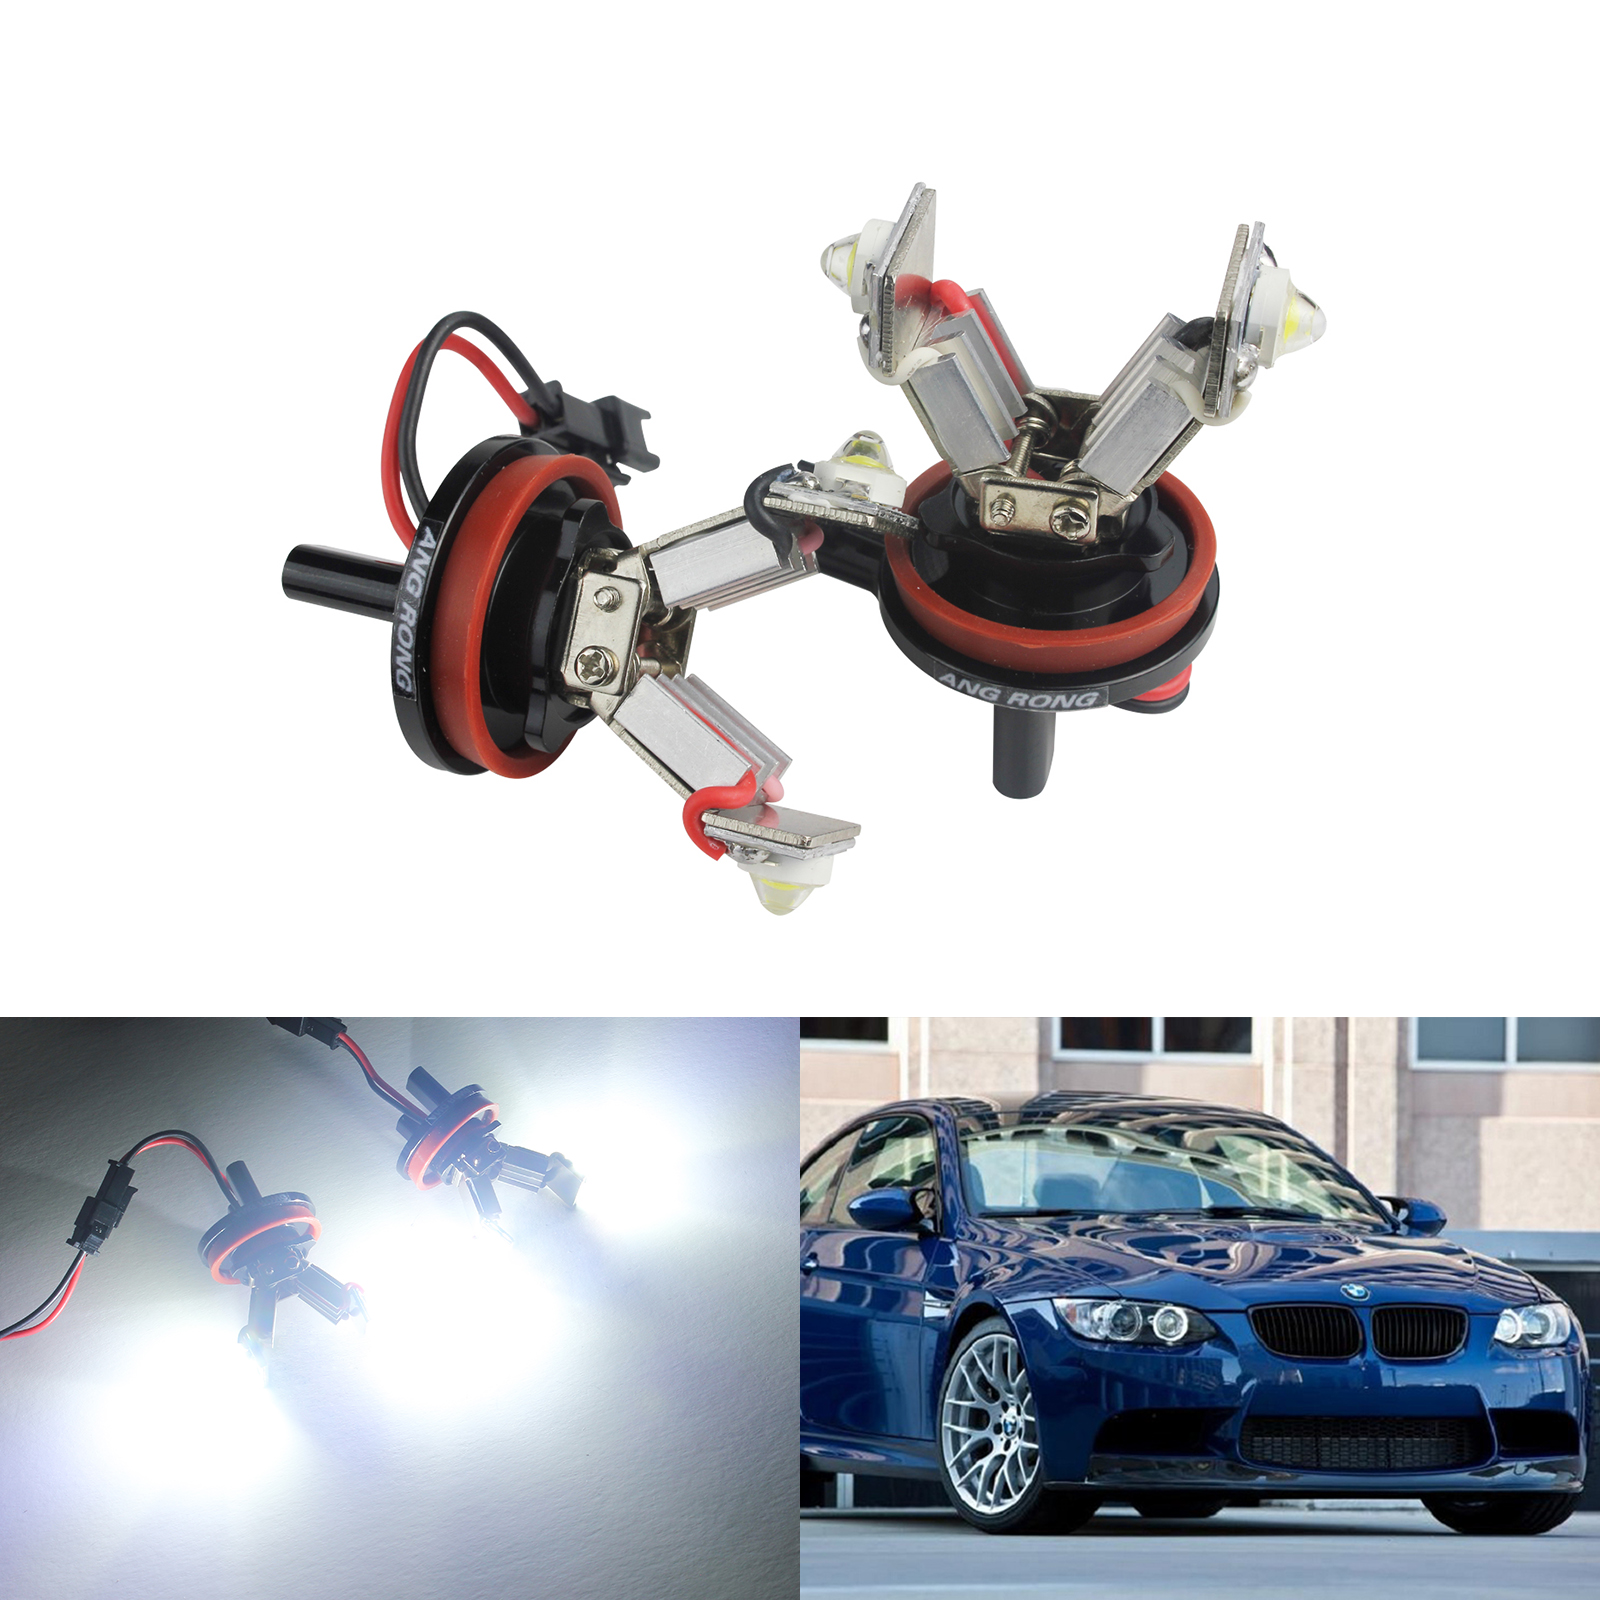 ANGRONG 2X LED 12W Angel Eyes Halo Light H8 Xenon Marker Bulb For BMW E90 E91 E92 E93 E60 E61 E63 E64 6w angel eyes blue light bulb for bmw e92 e93 e70 pair 8 30v